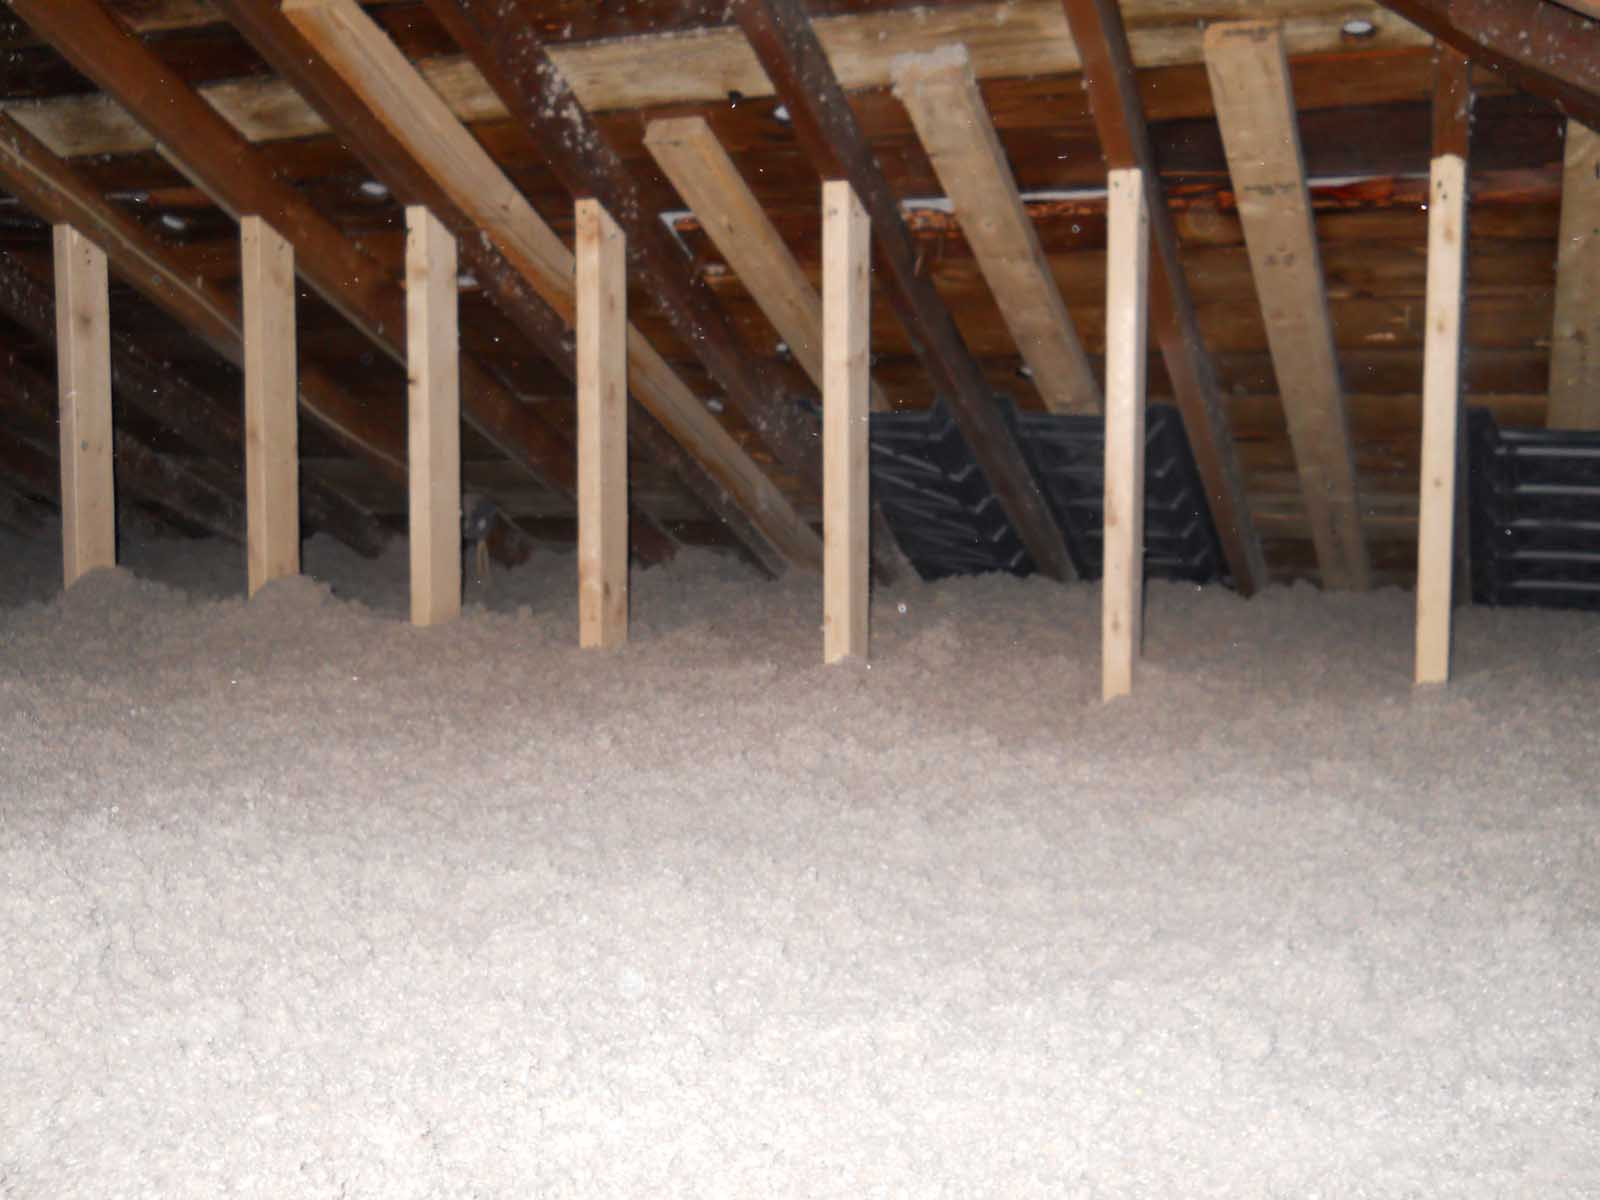 Insulation Services Page, Gallery, Attic Insulation Installation with cellulose insulation , MGT Insulation, Inc. (3)